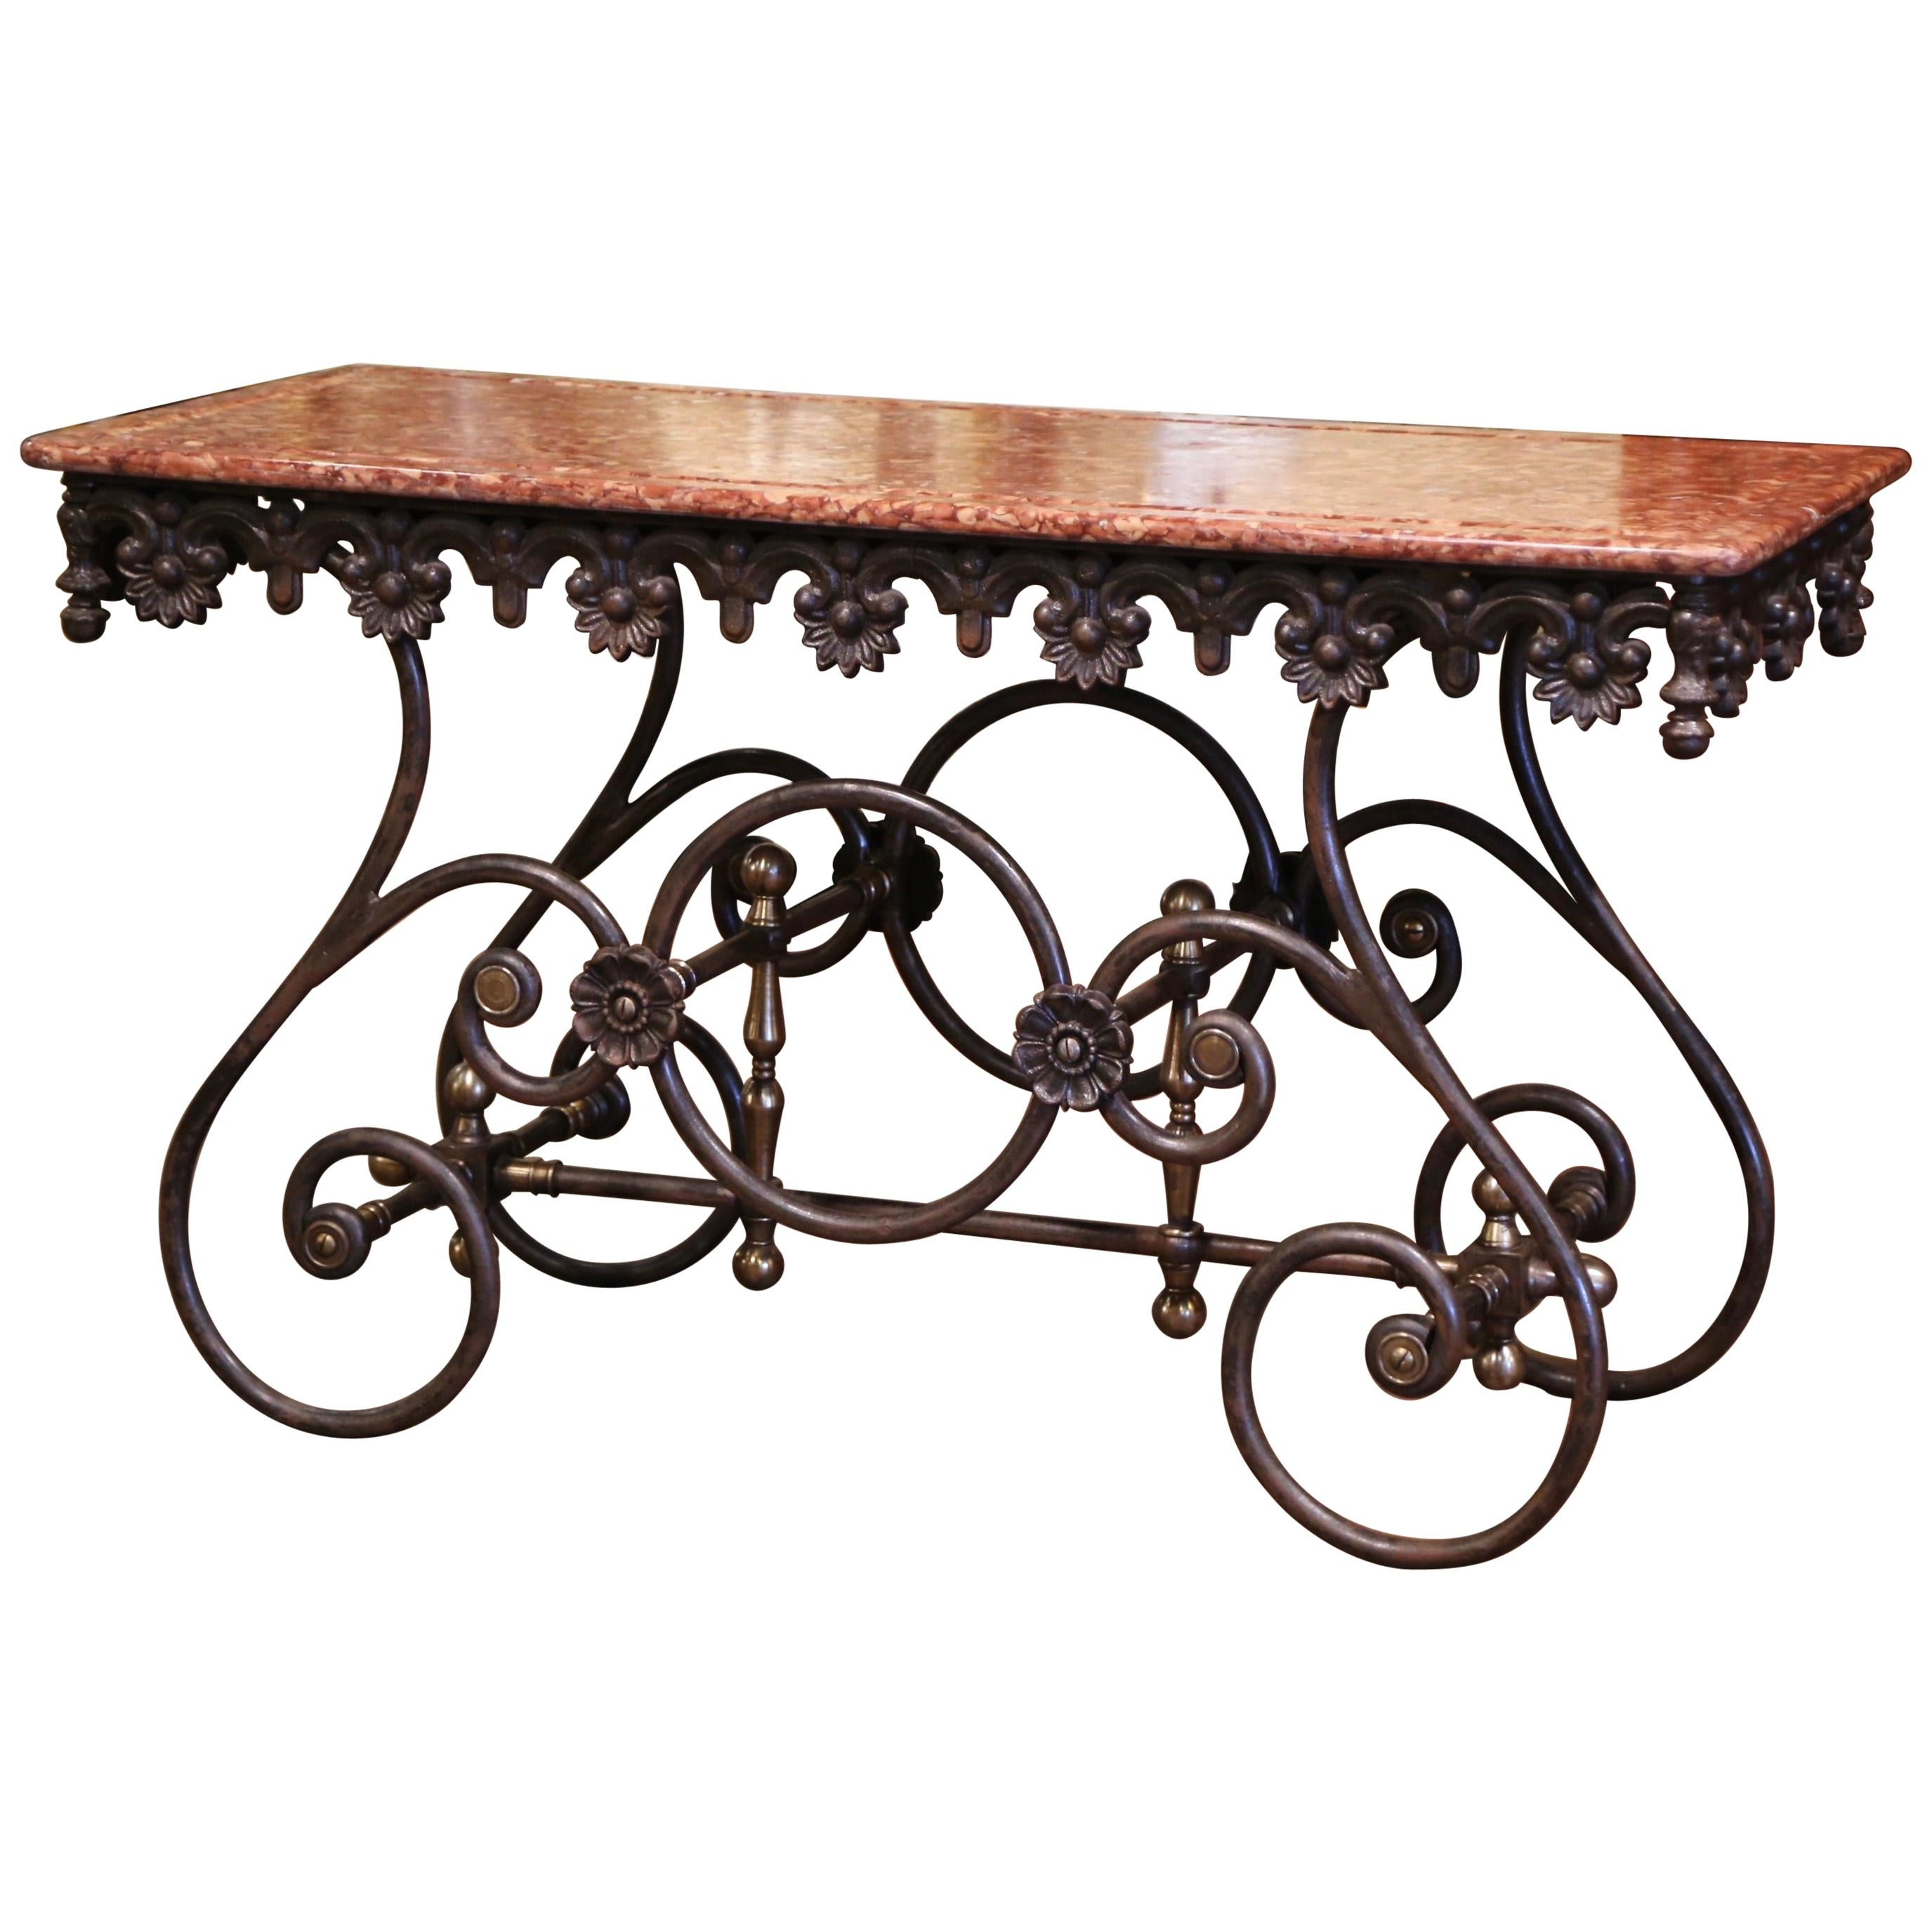 French Polished Iron and Brass Pastry Table with Variegated Red Marble Top